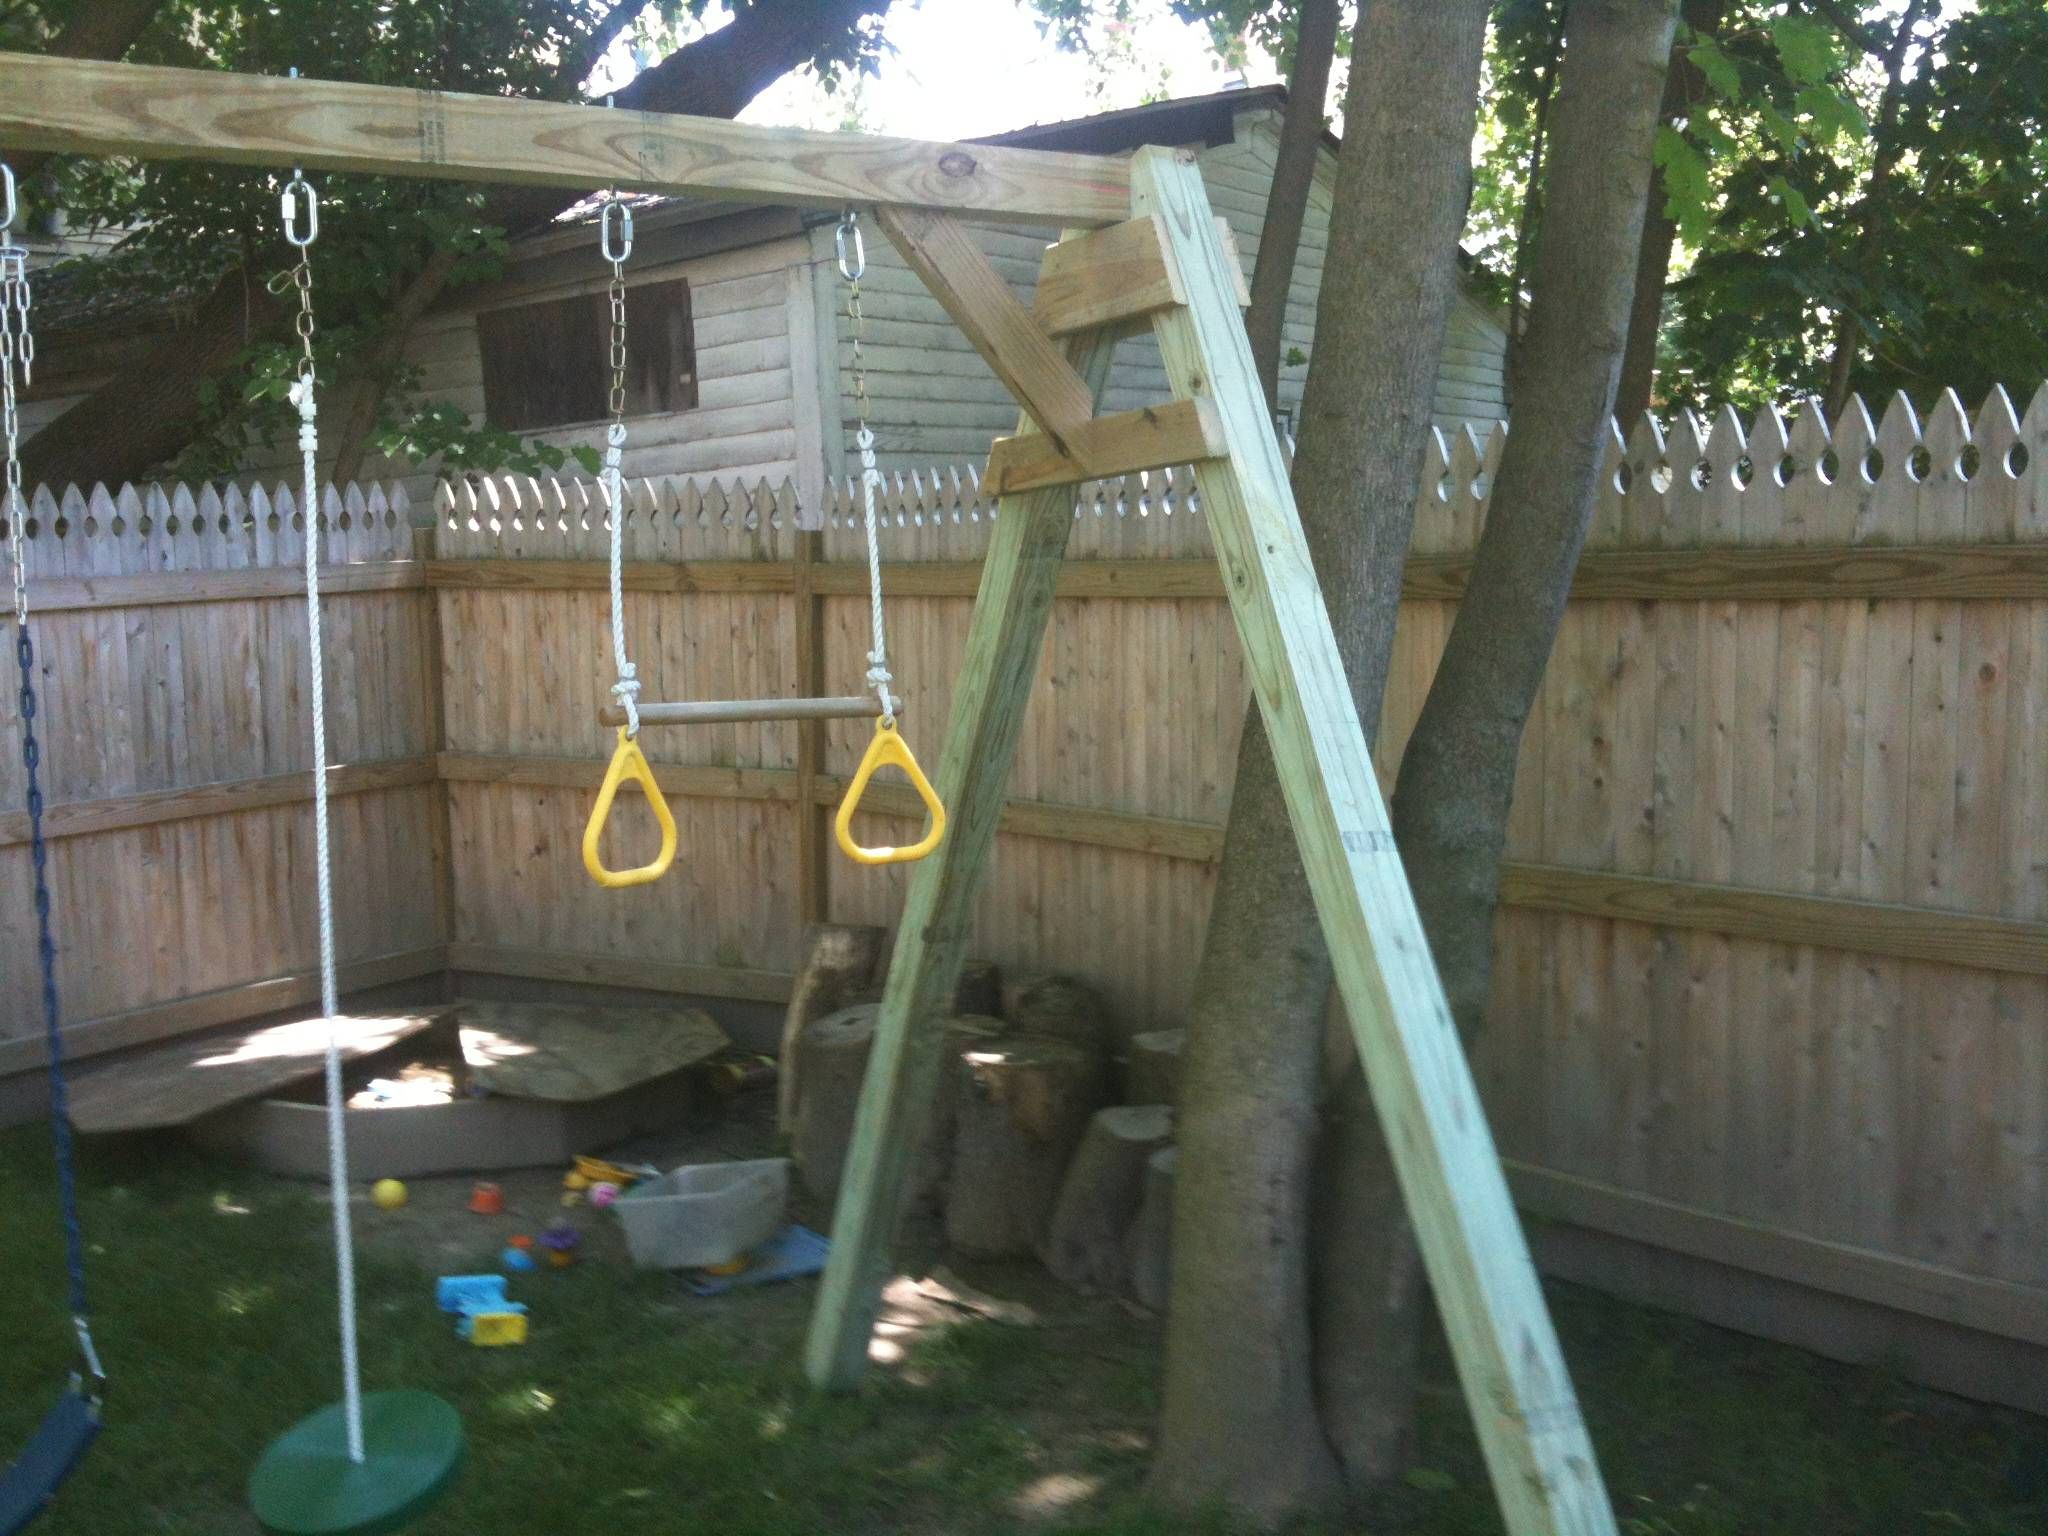 Groovy A Frame Swing Set Plans A Frame Swing Set A Frame Swing Caraccident5 Cool Chair Designs And Ideas Caraccident5Info